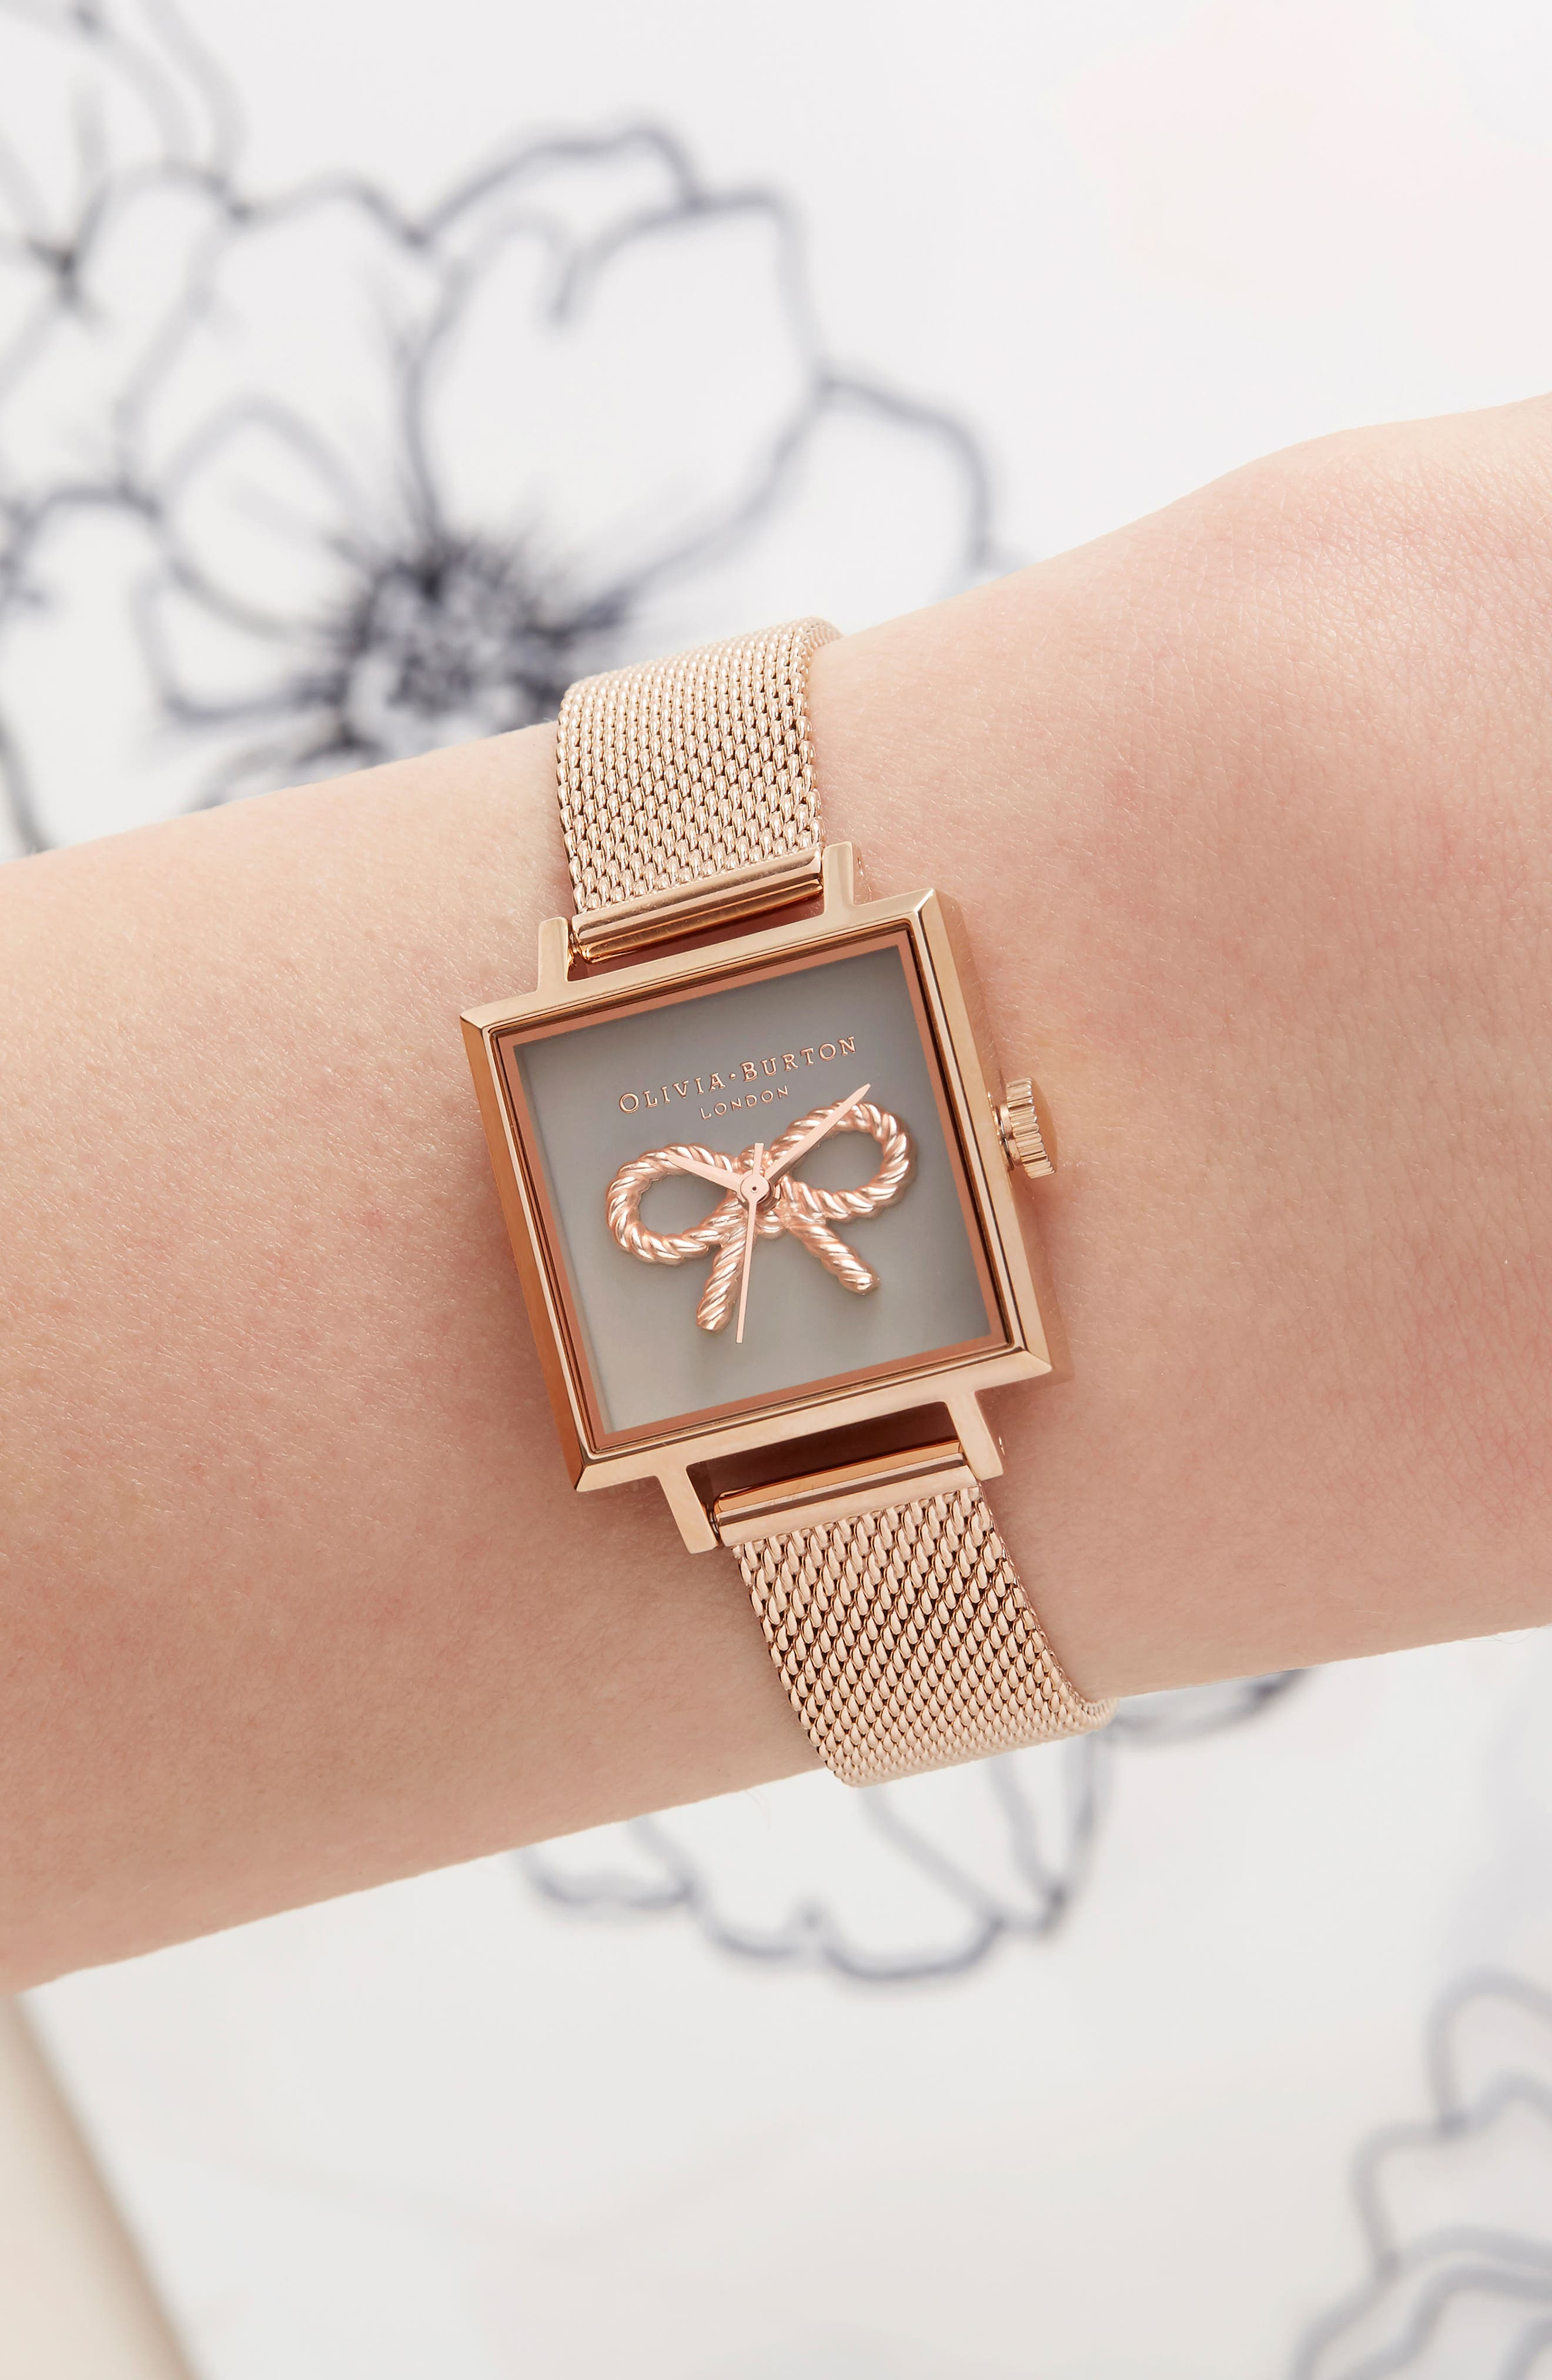 Vintage Bow Square Mesh Strap Watch, 23mm,                             Alternate thumbnail 6, color,                             ROSE GOLD/ BOW/ ROSE GOLD